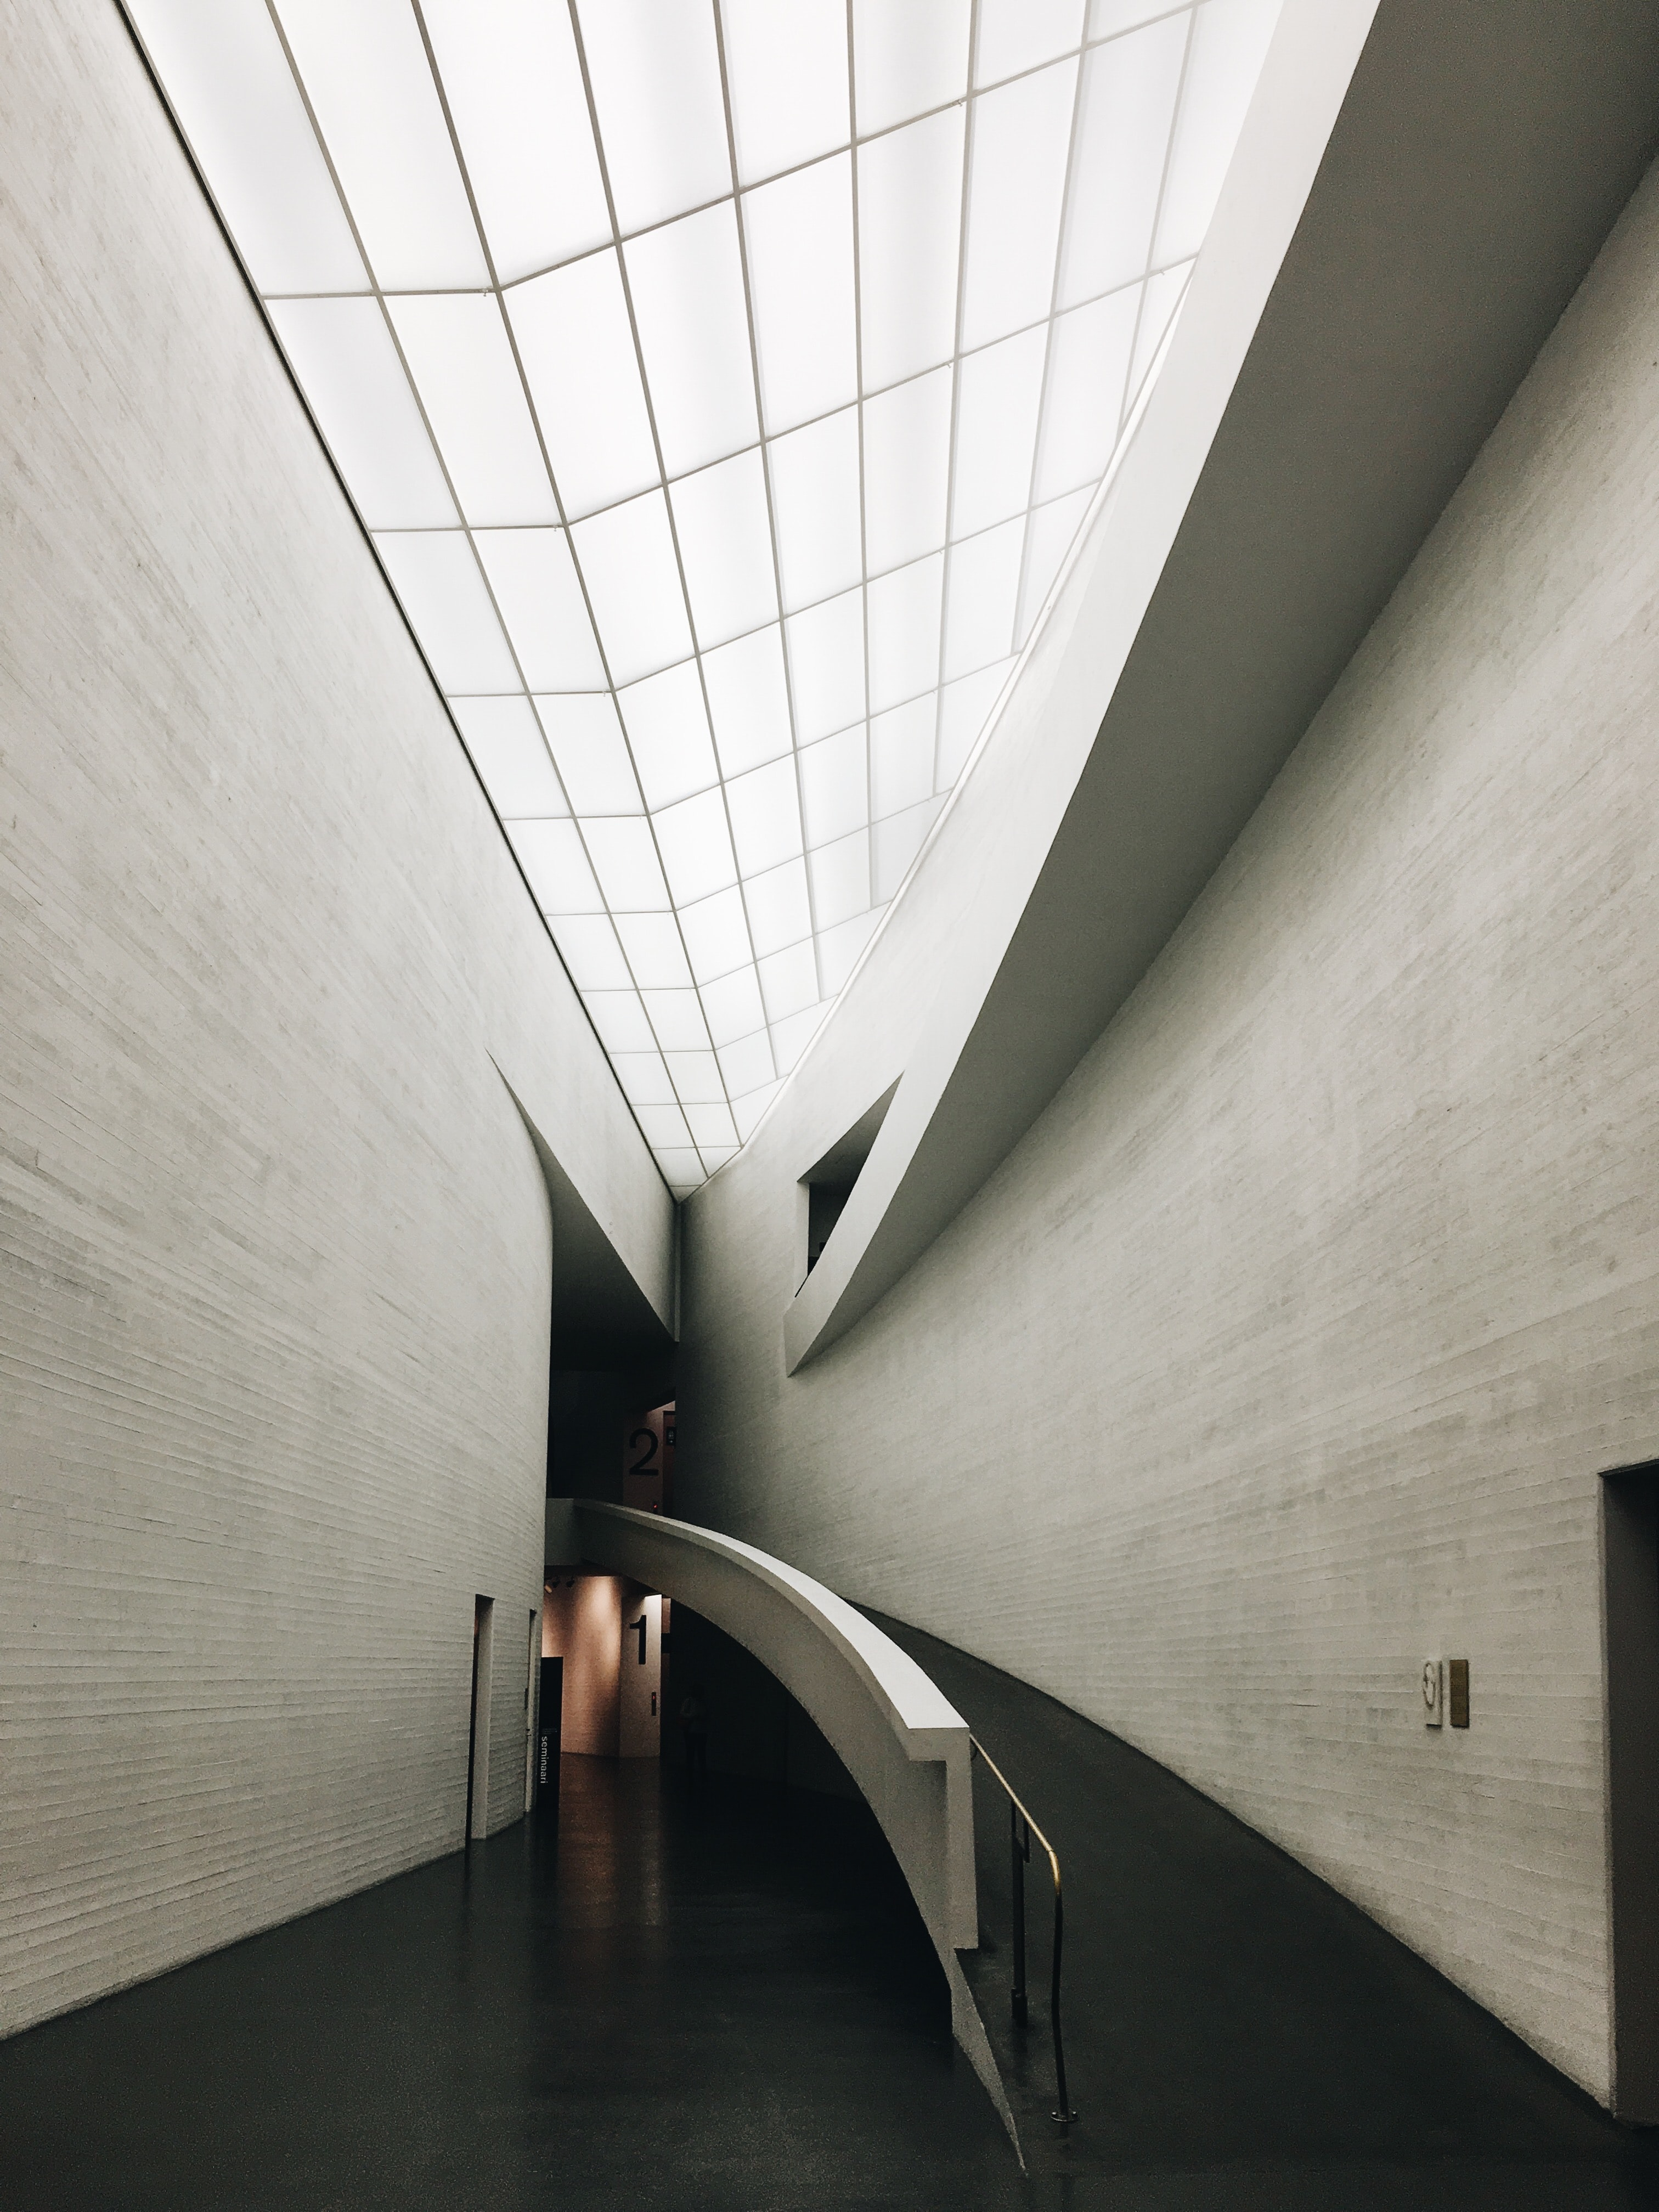 A ramp along a curved wall in the Kiasma Museum